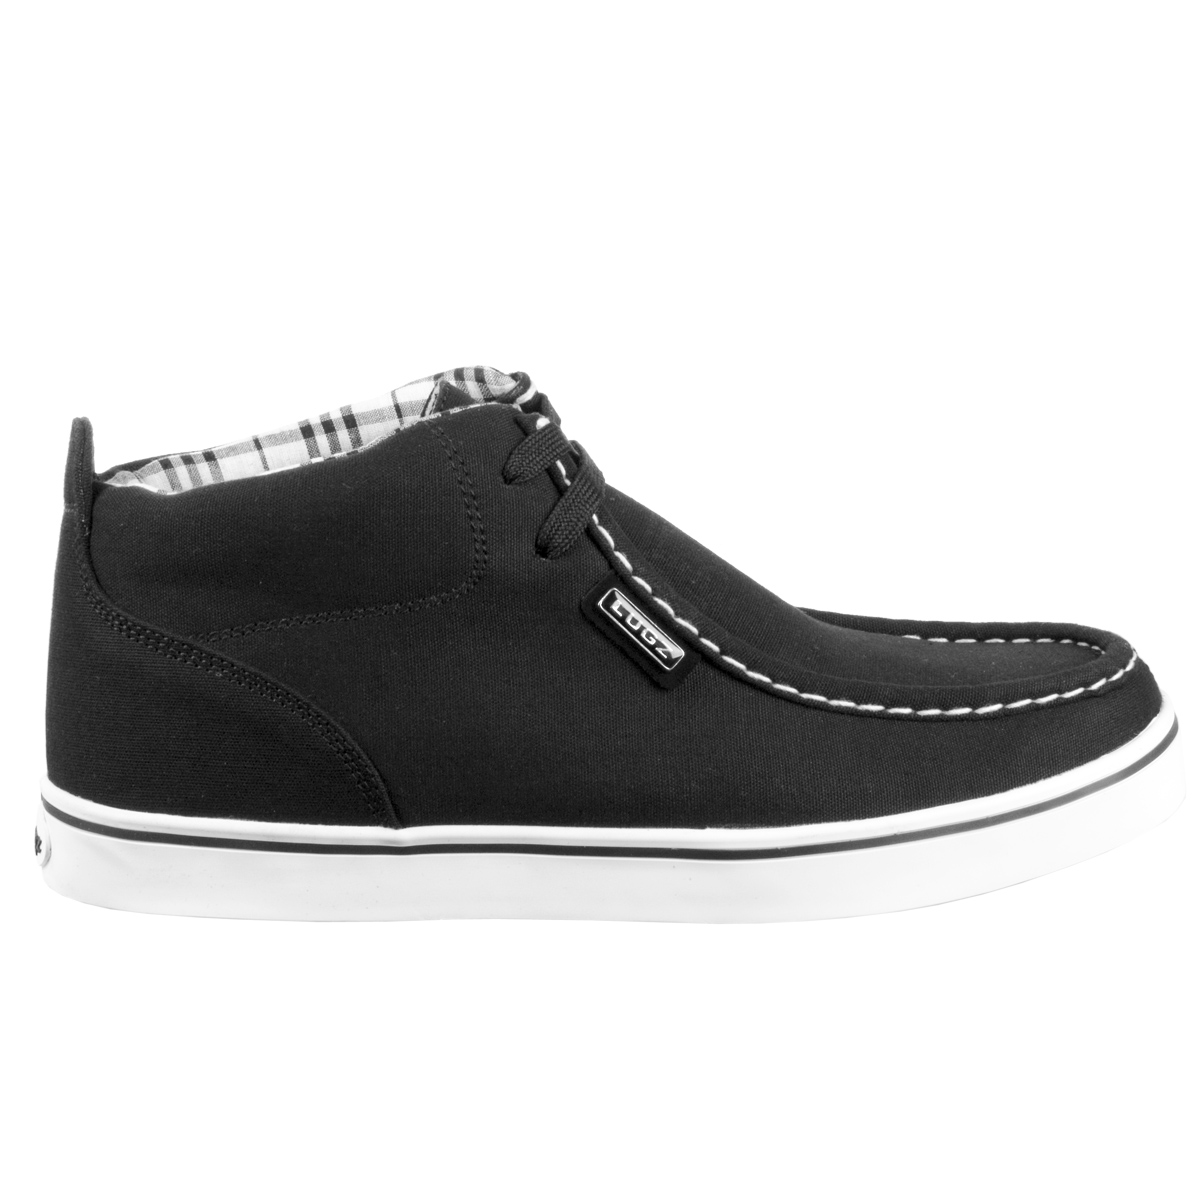 Lugz Strider Boys Shoe Black/White/Plaid